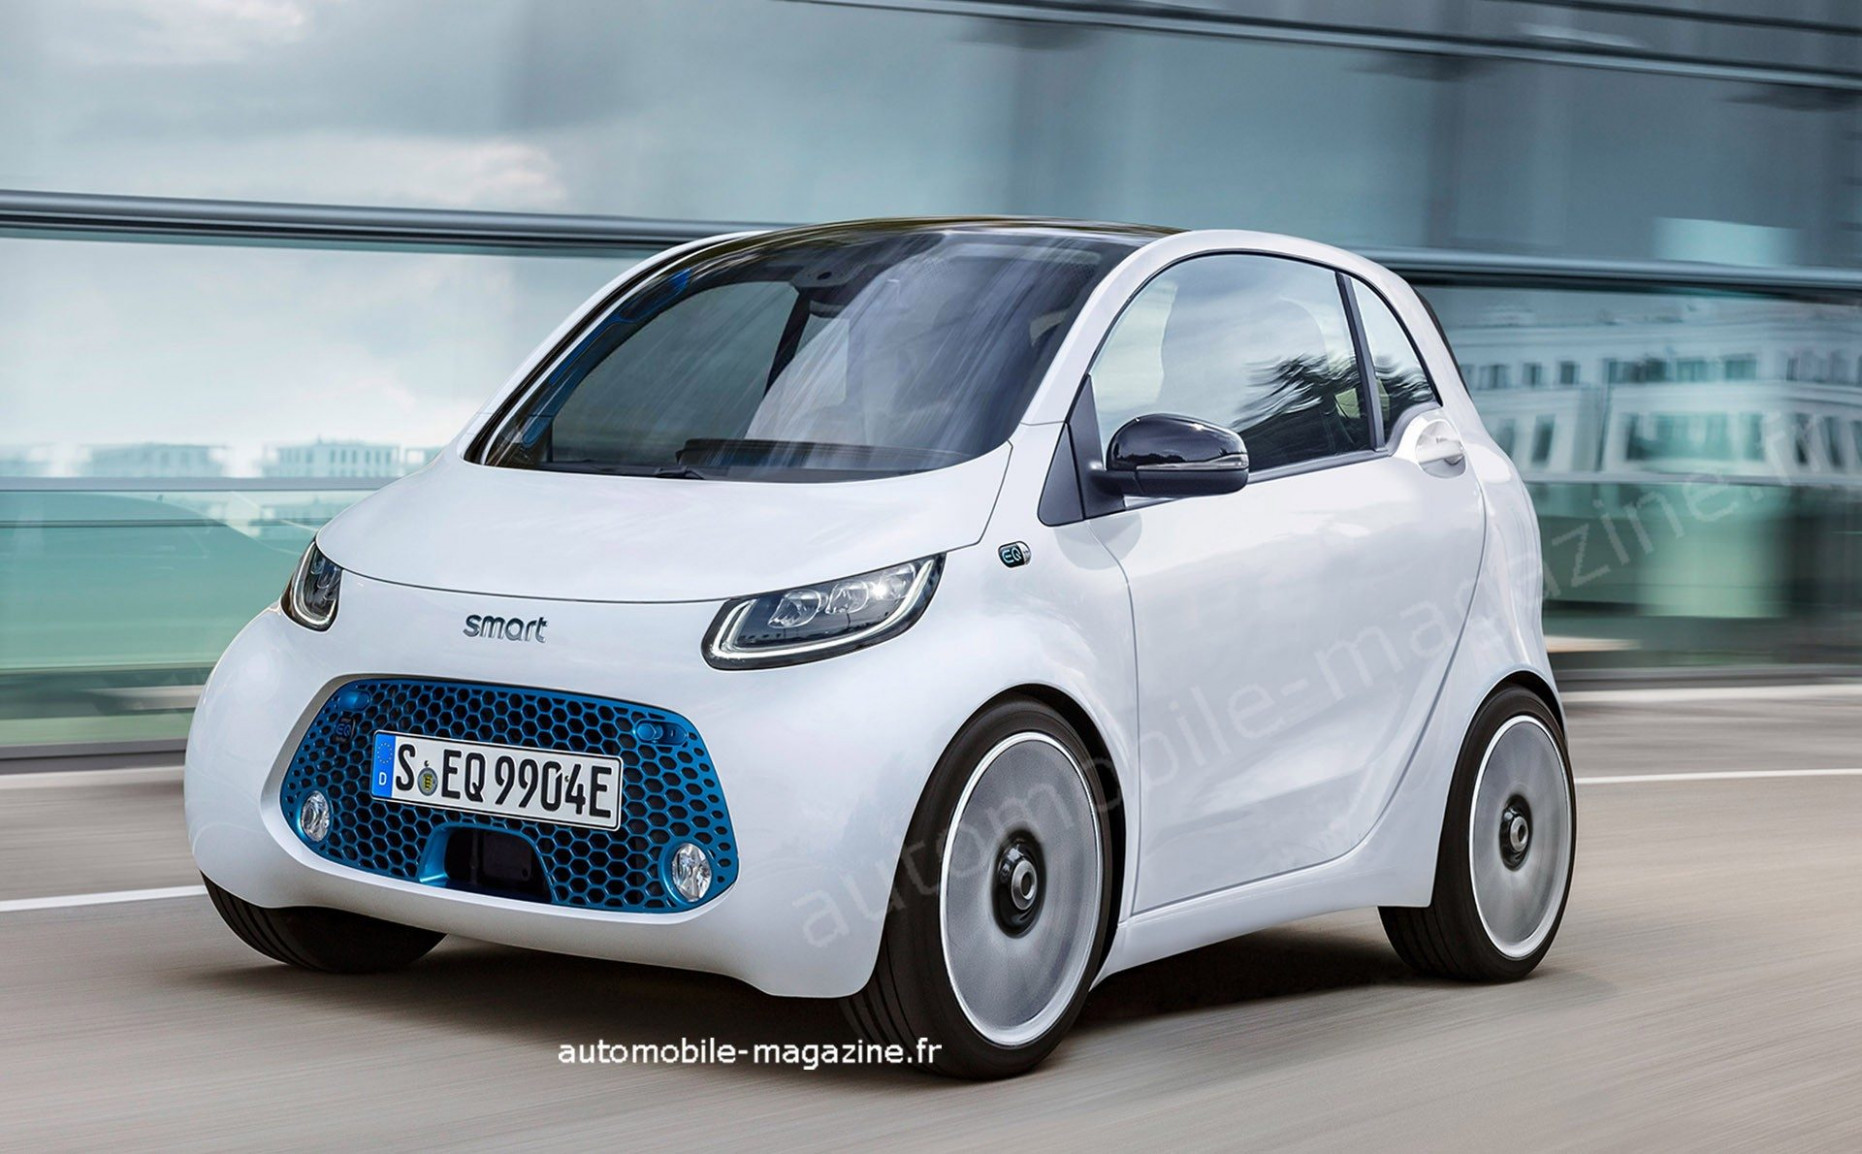 New Model and Performance 2022 Smart Fortwo